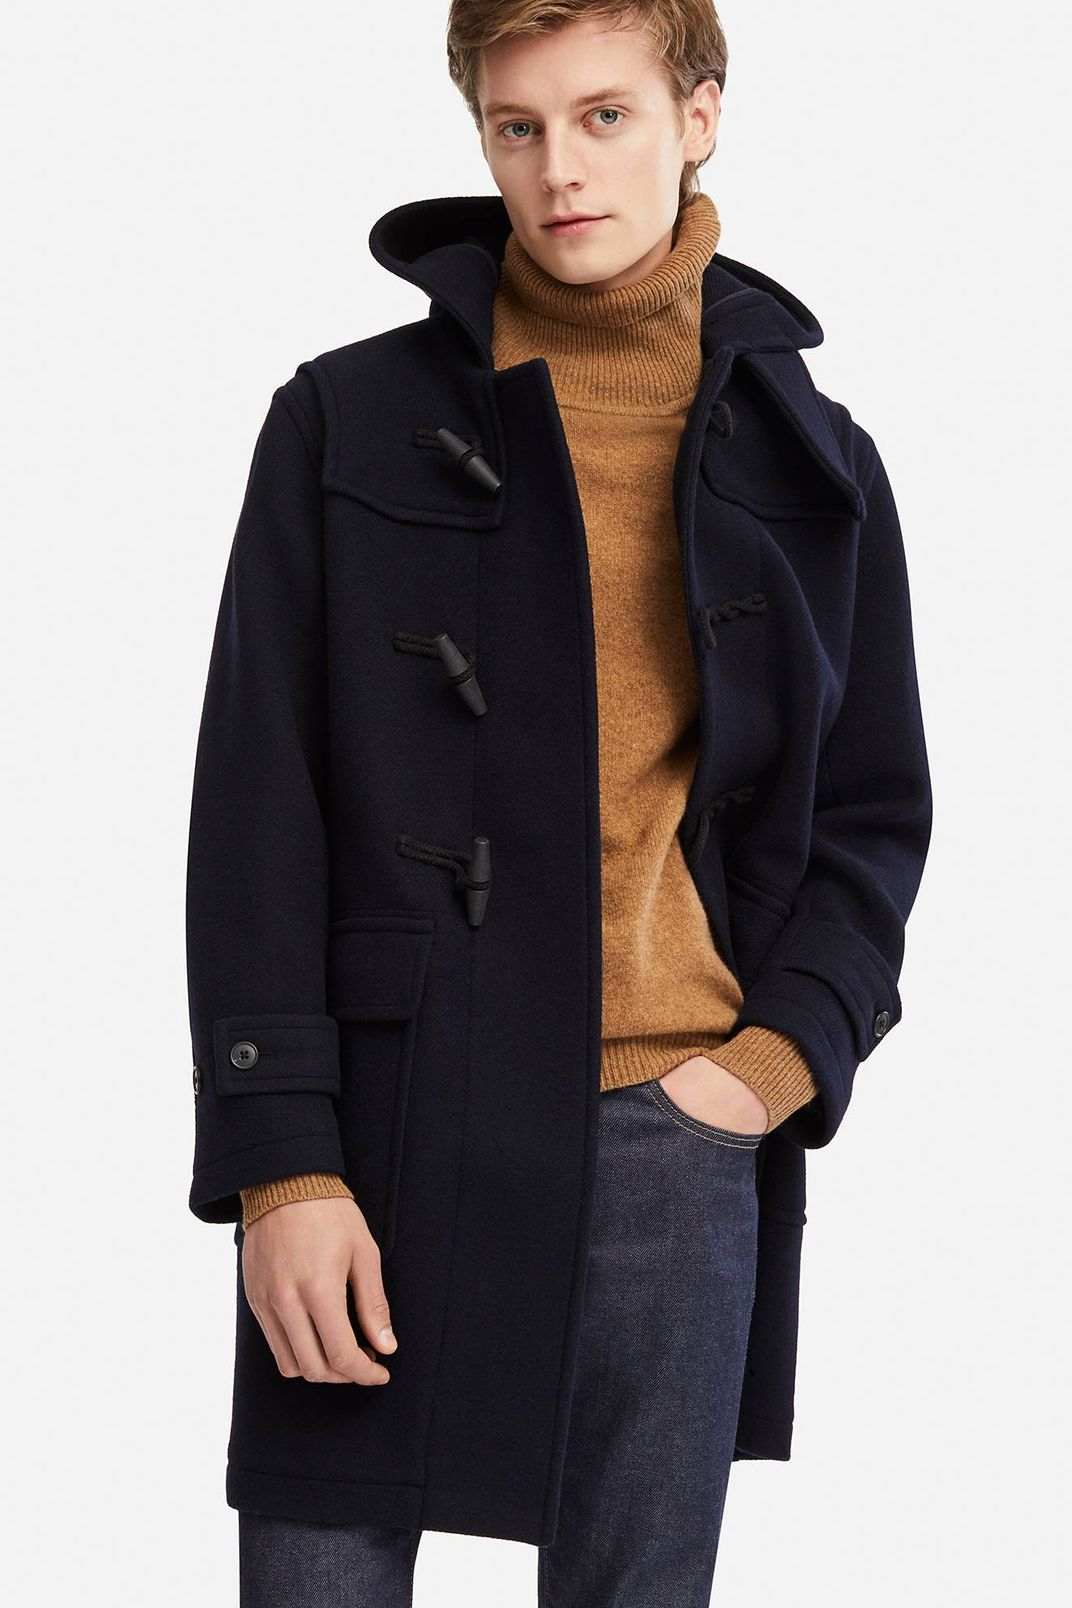 Uniqlo Men's Wool Blend Duffle Coat